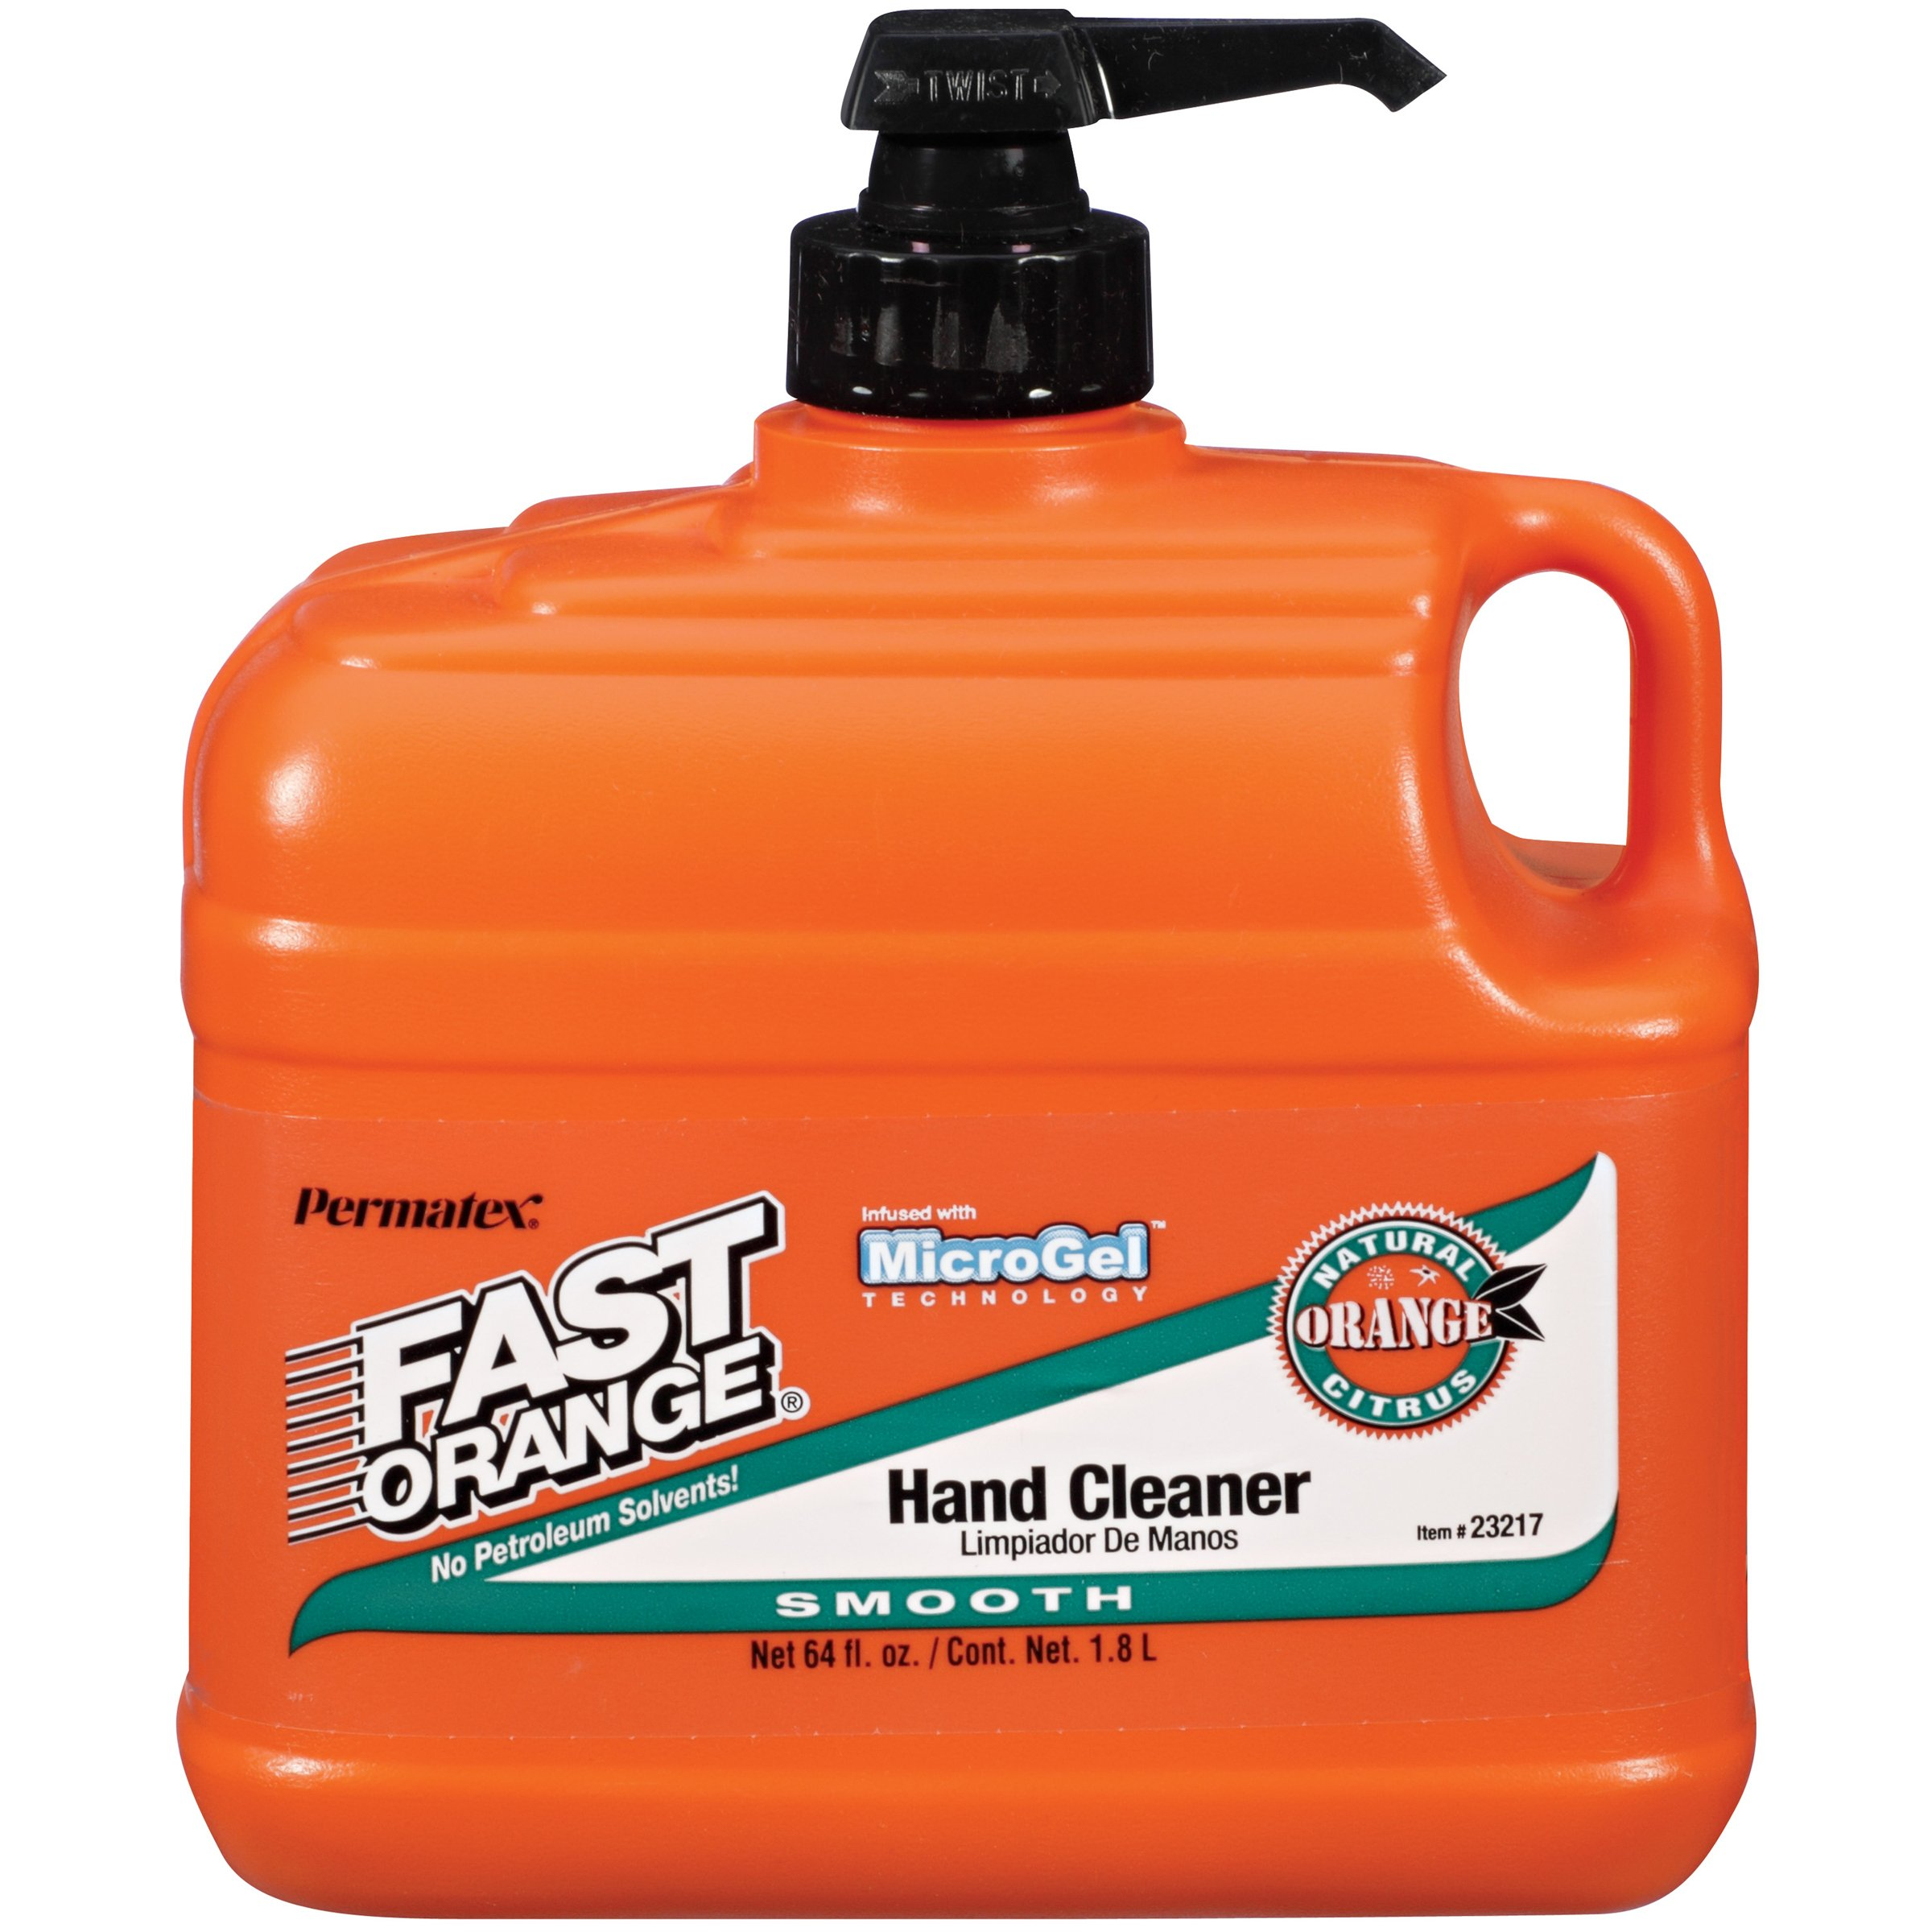 Permatex 23217-6PK Fast Orange Smooth Lotion Hand Cleaner with Pump - 1/2 Gallon, (Pack of 6) by Permatex (Image #1)